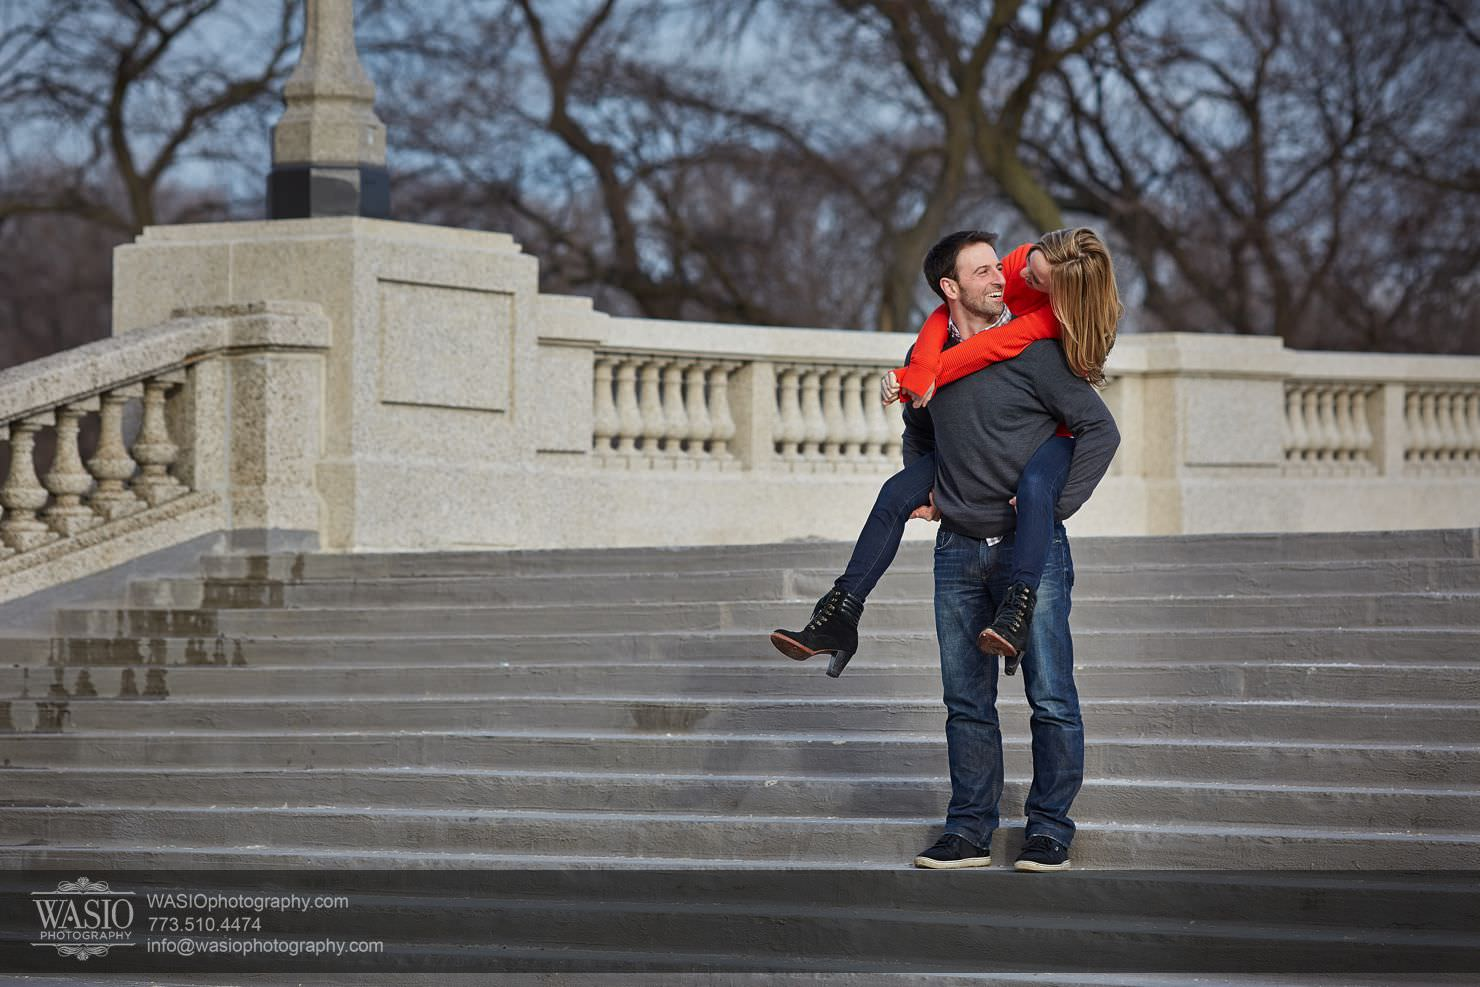 012_Chicago-Winter-Engagement_Courtney-Danny Chicago Winter Engagement - Courtney + Danny